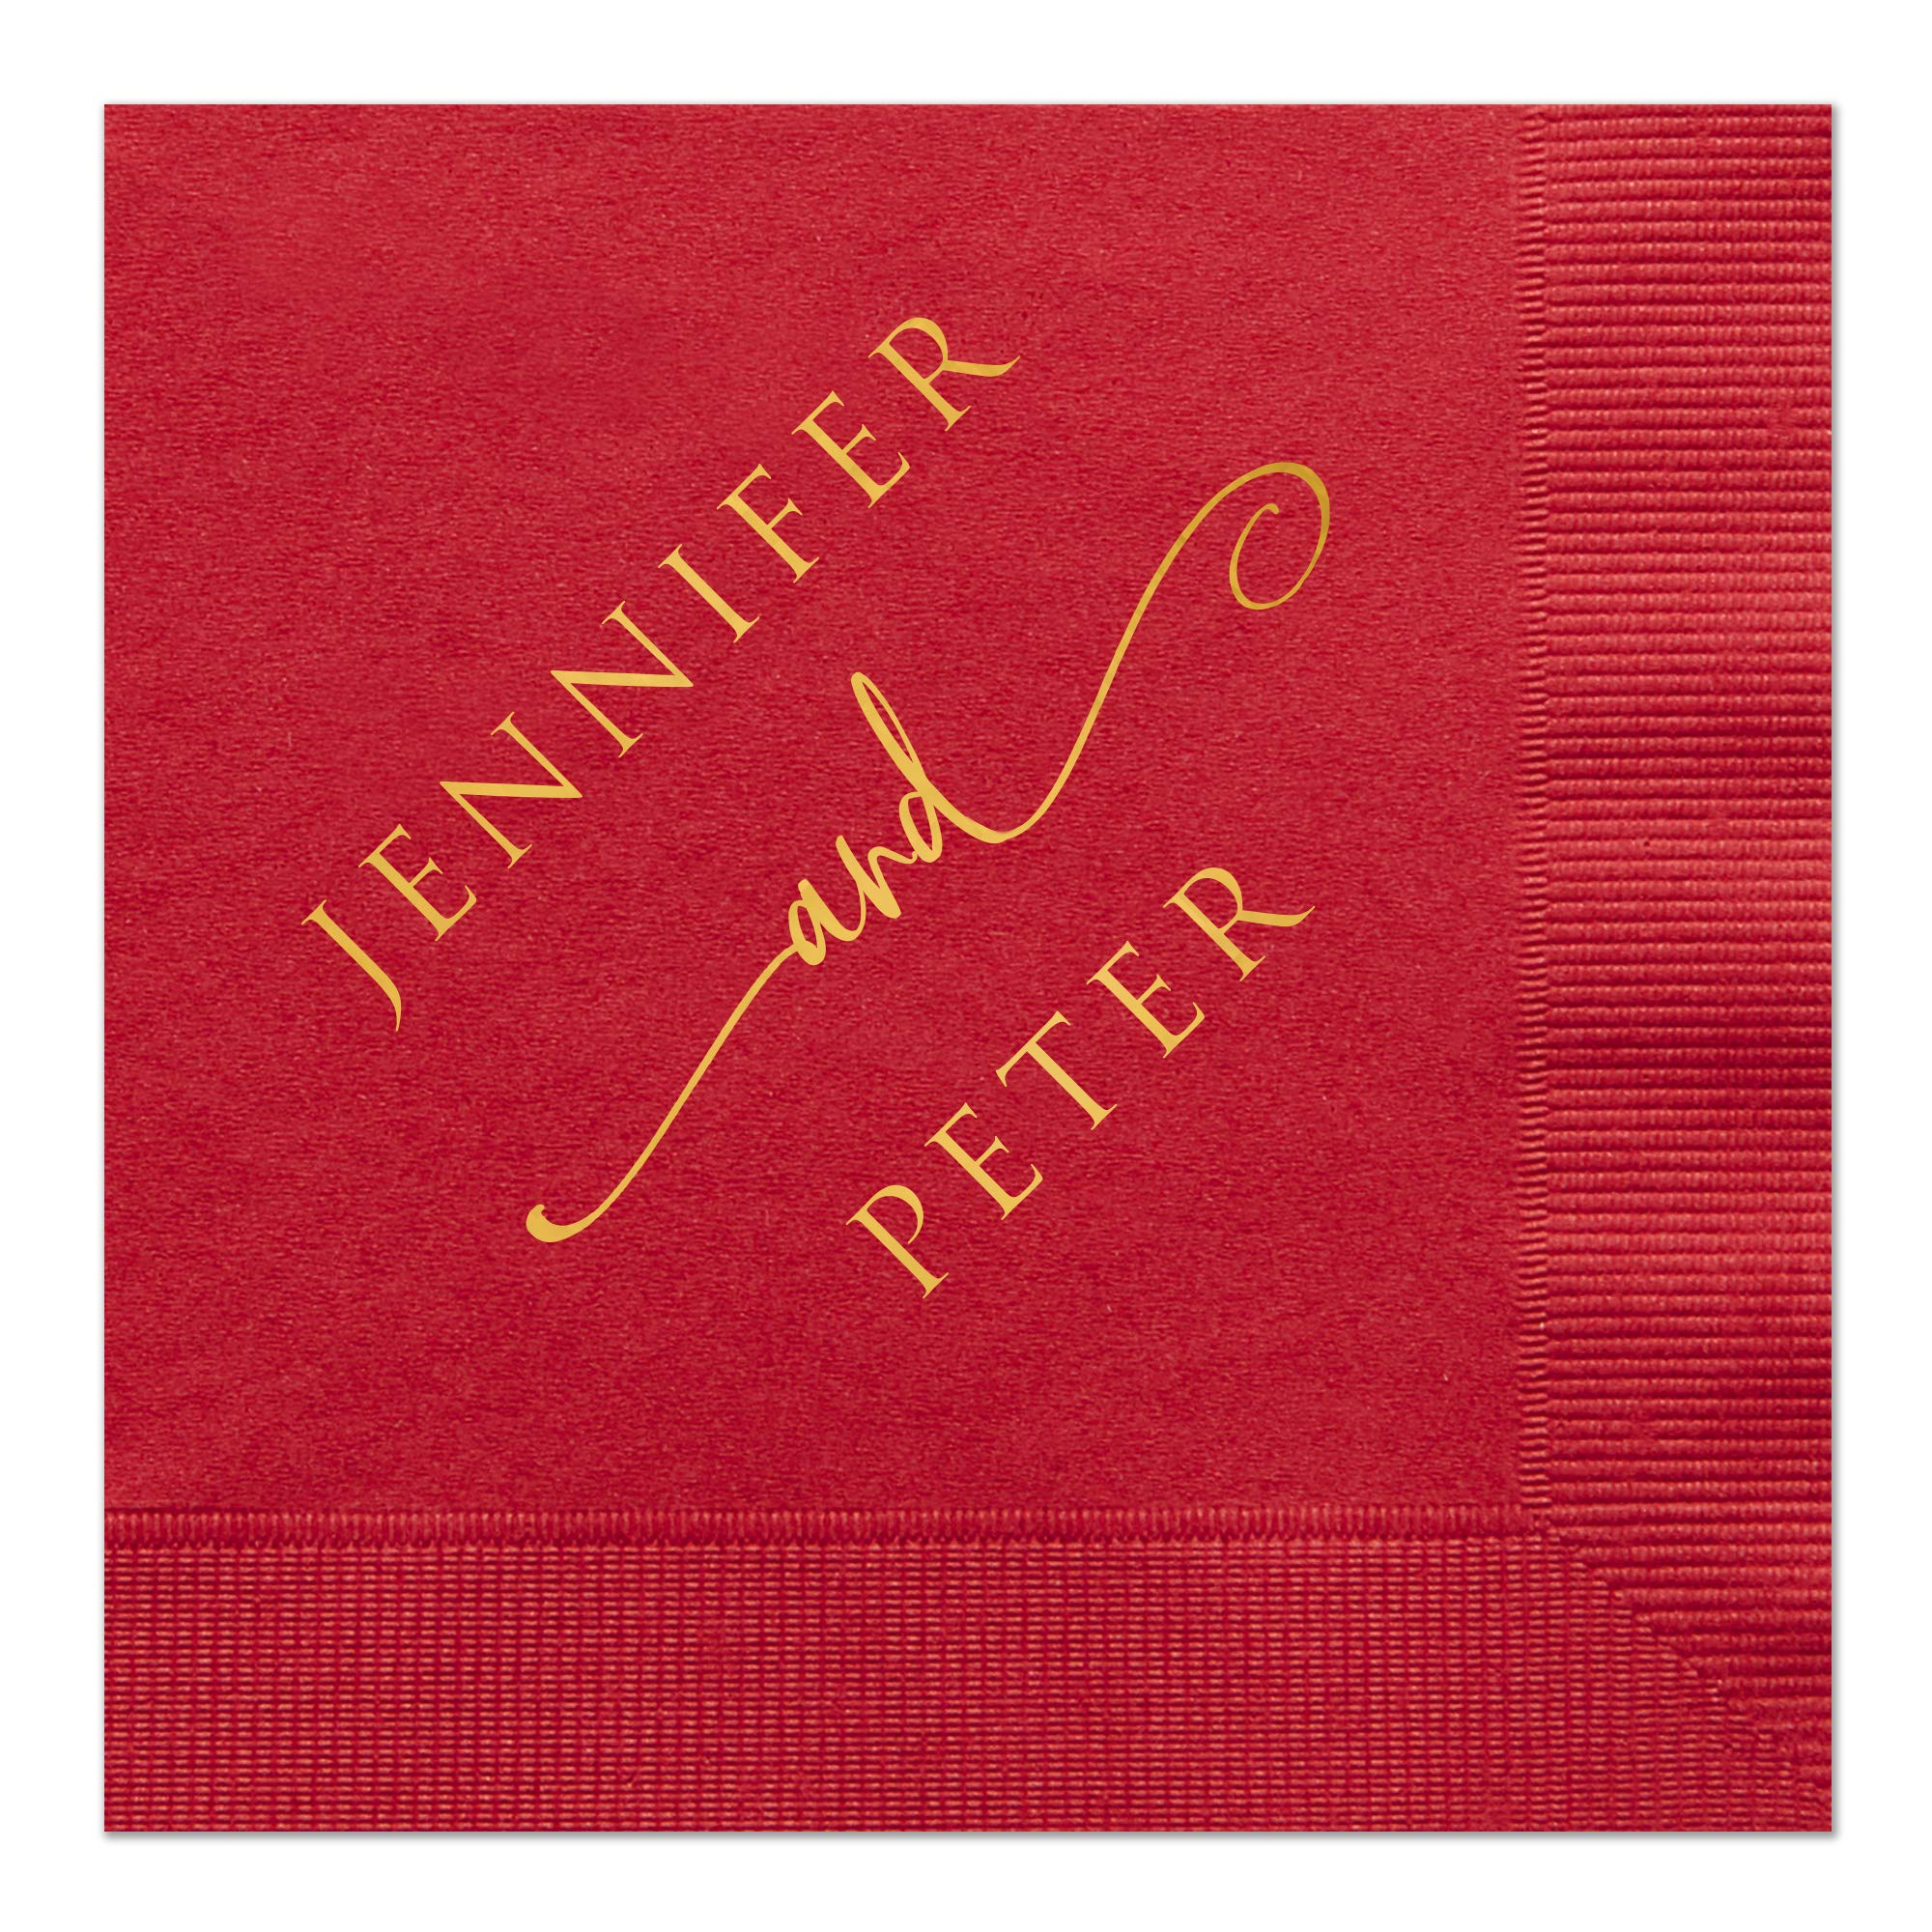 Classic Wedding Napkin with Bride and Grooms Names, set of 100